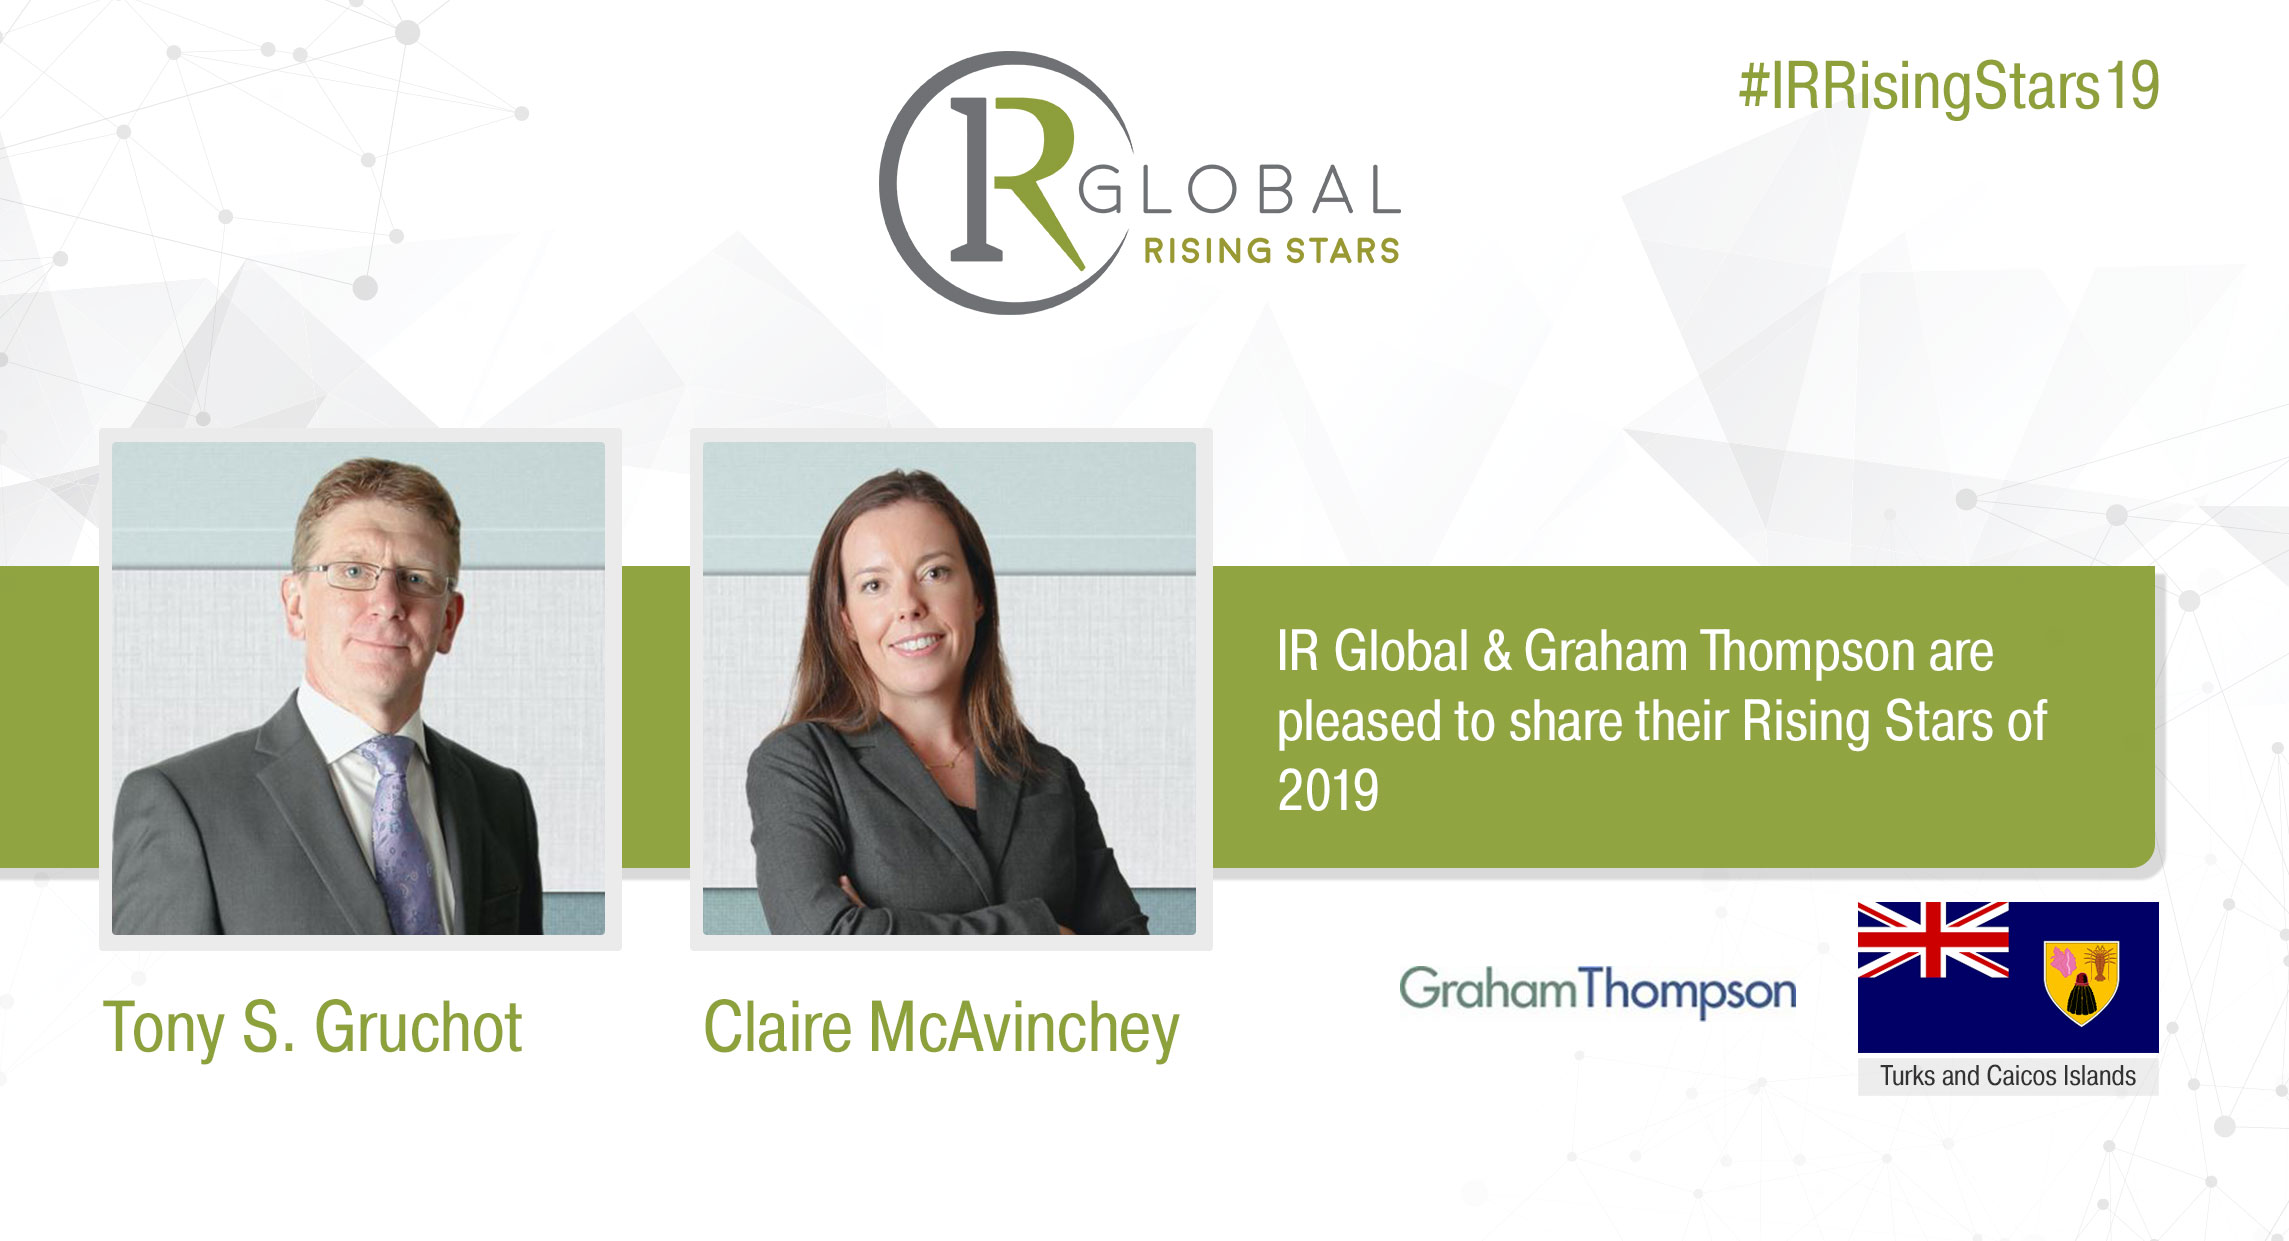 Graham Thompson's IR Global 2019 Rising Stars